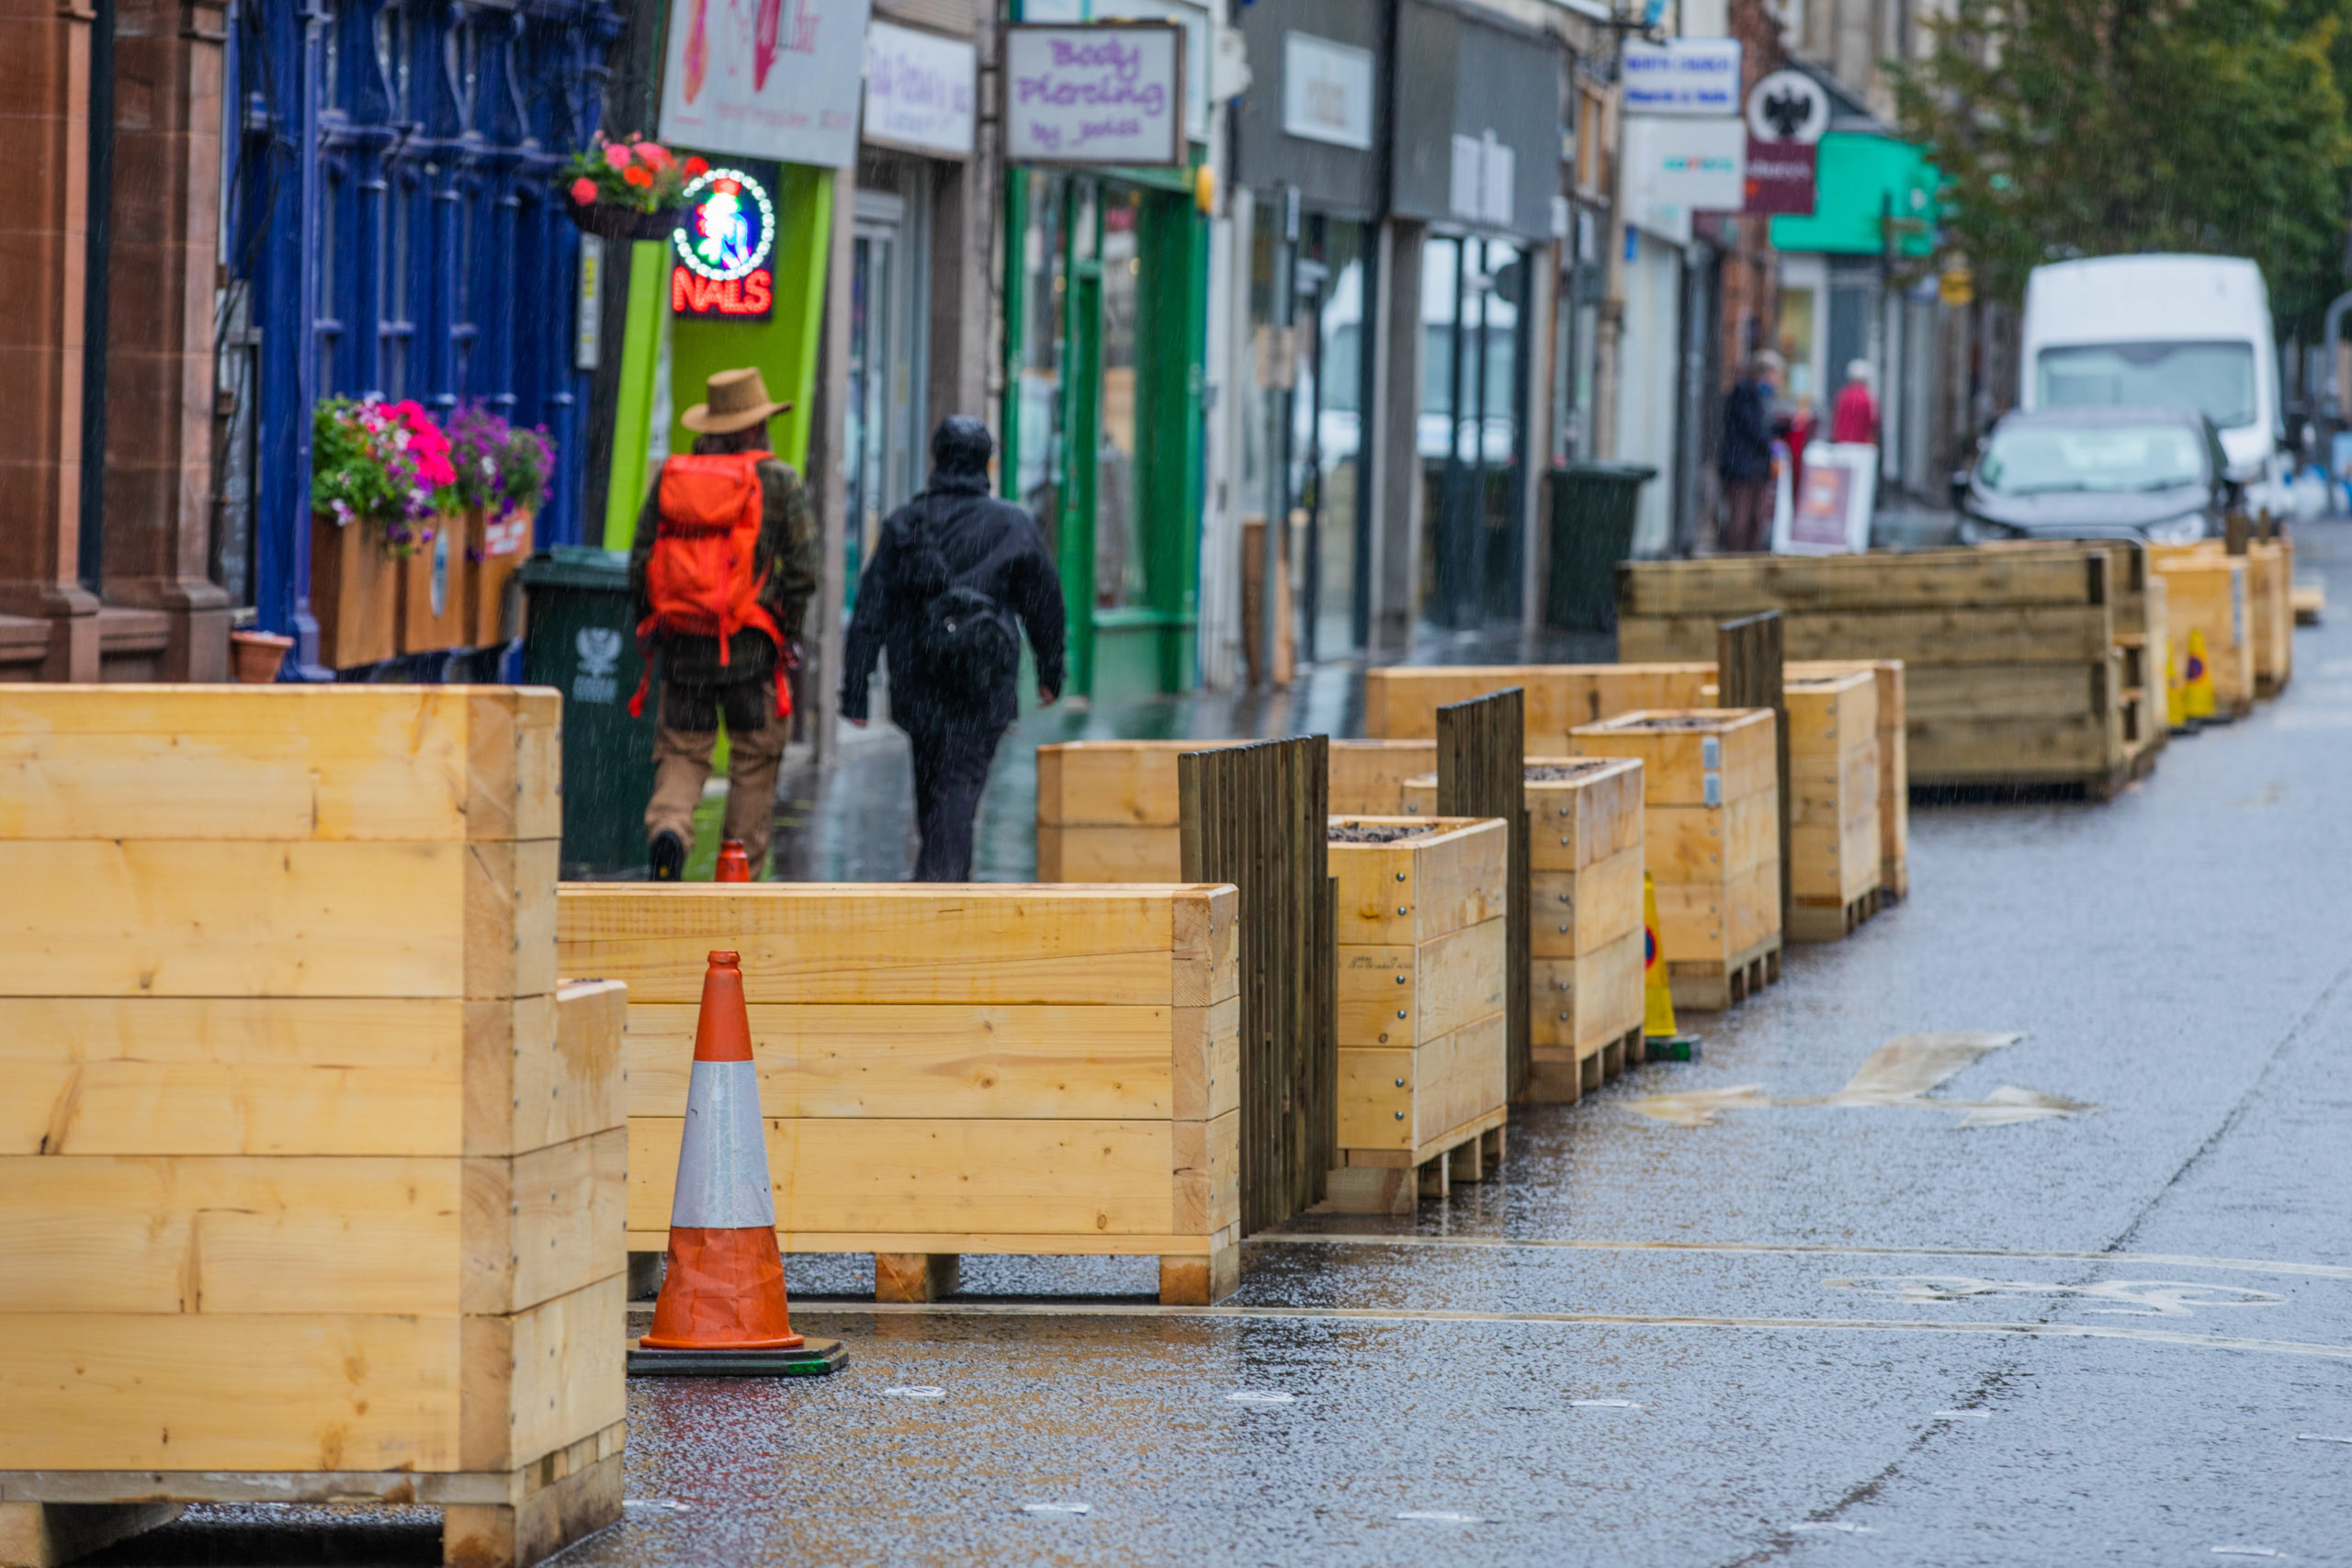 Changes to infrastructure on Perth High Street. Picture: Steve MacDougall.